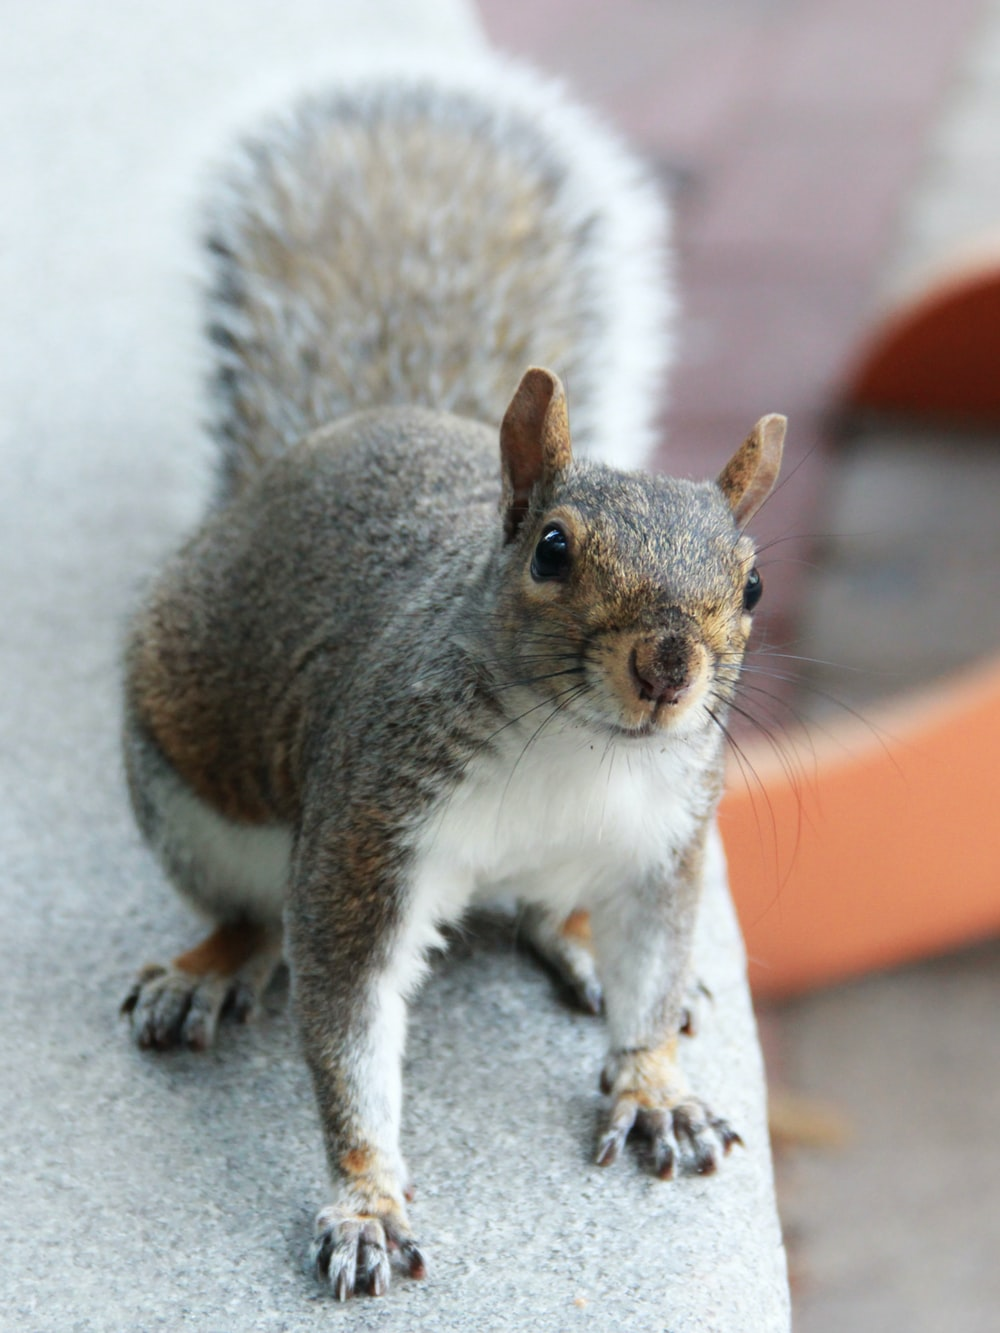 gray and white squirrel on gray concrete floor